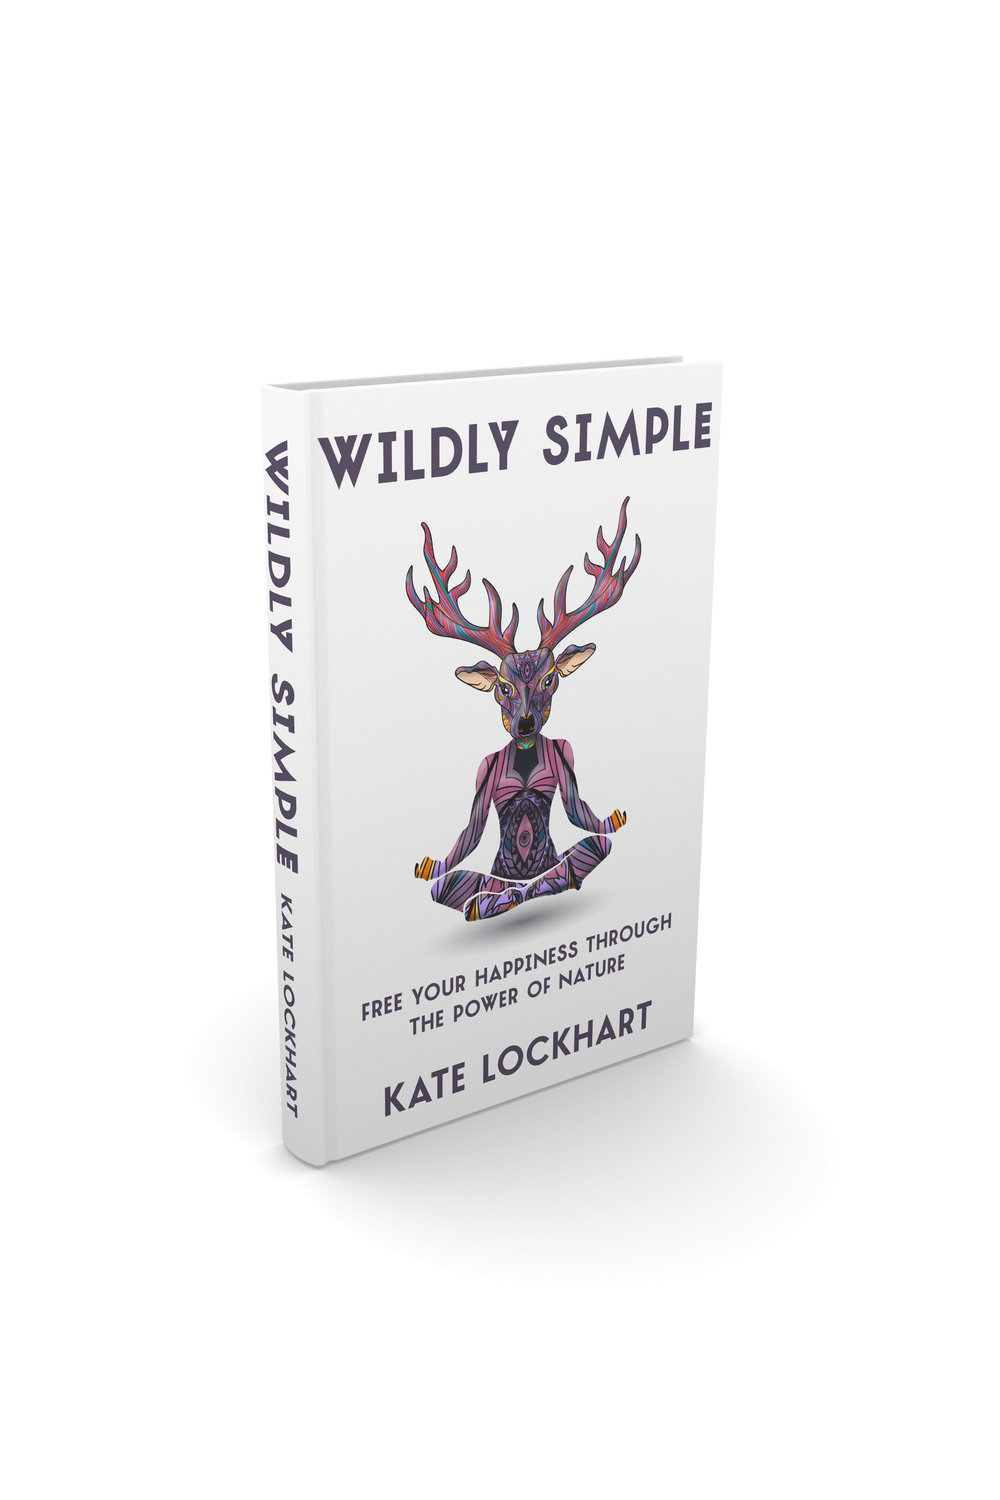 wildly simple free your happiness through the power of nature